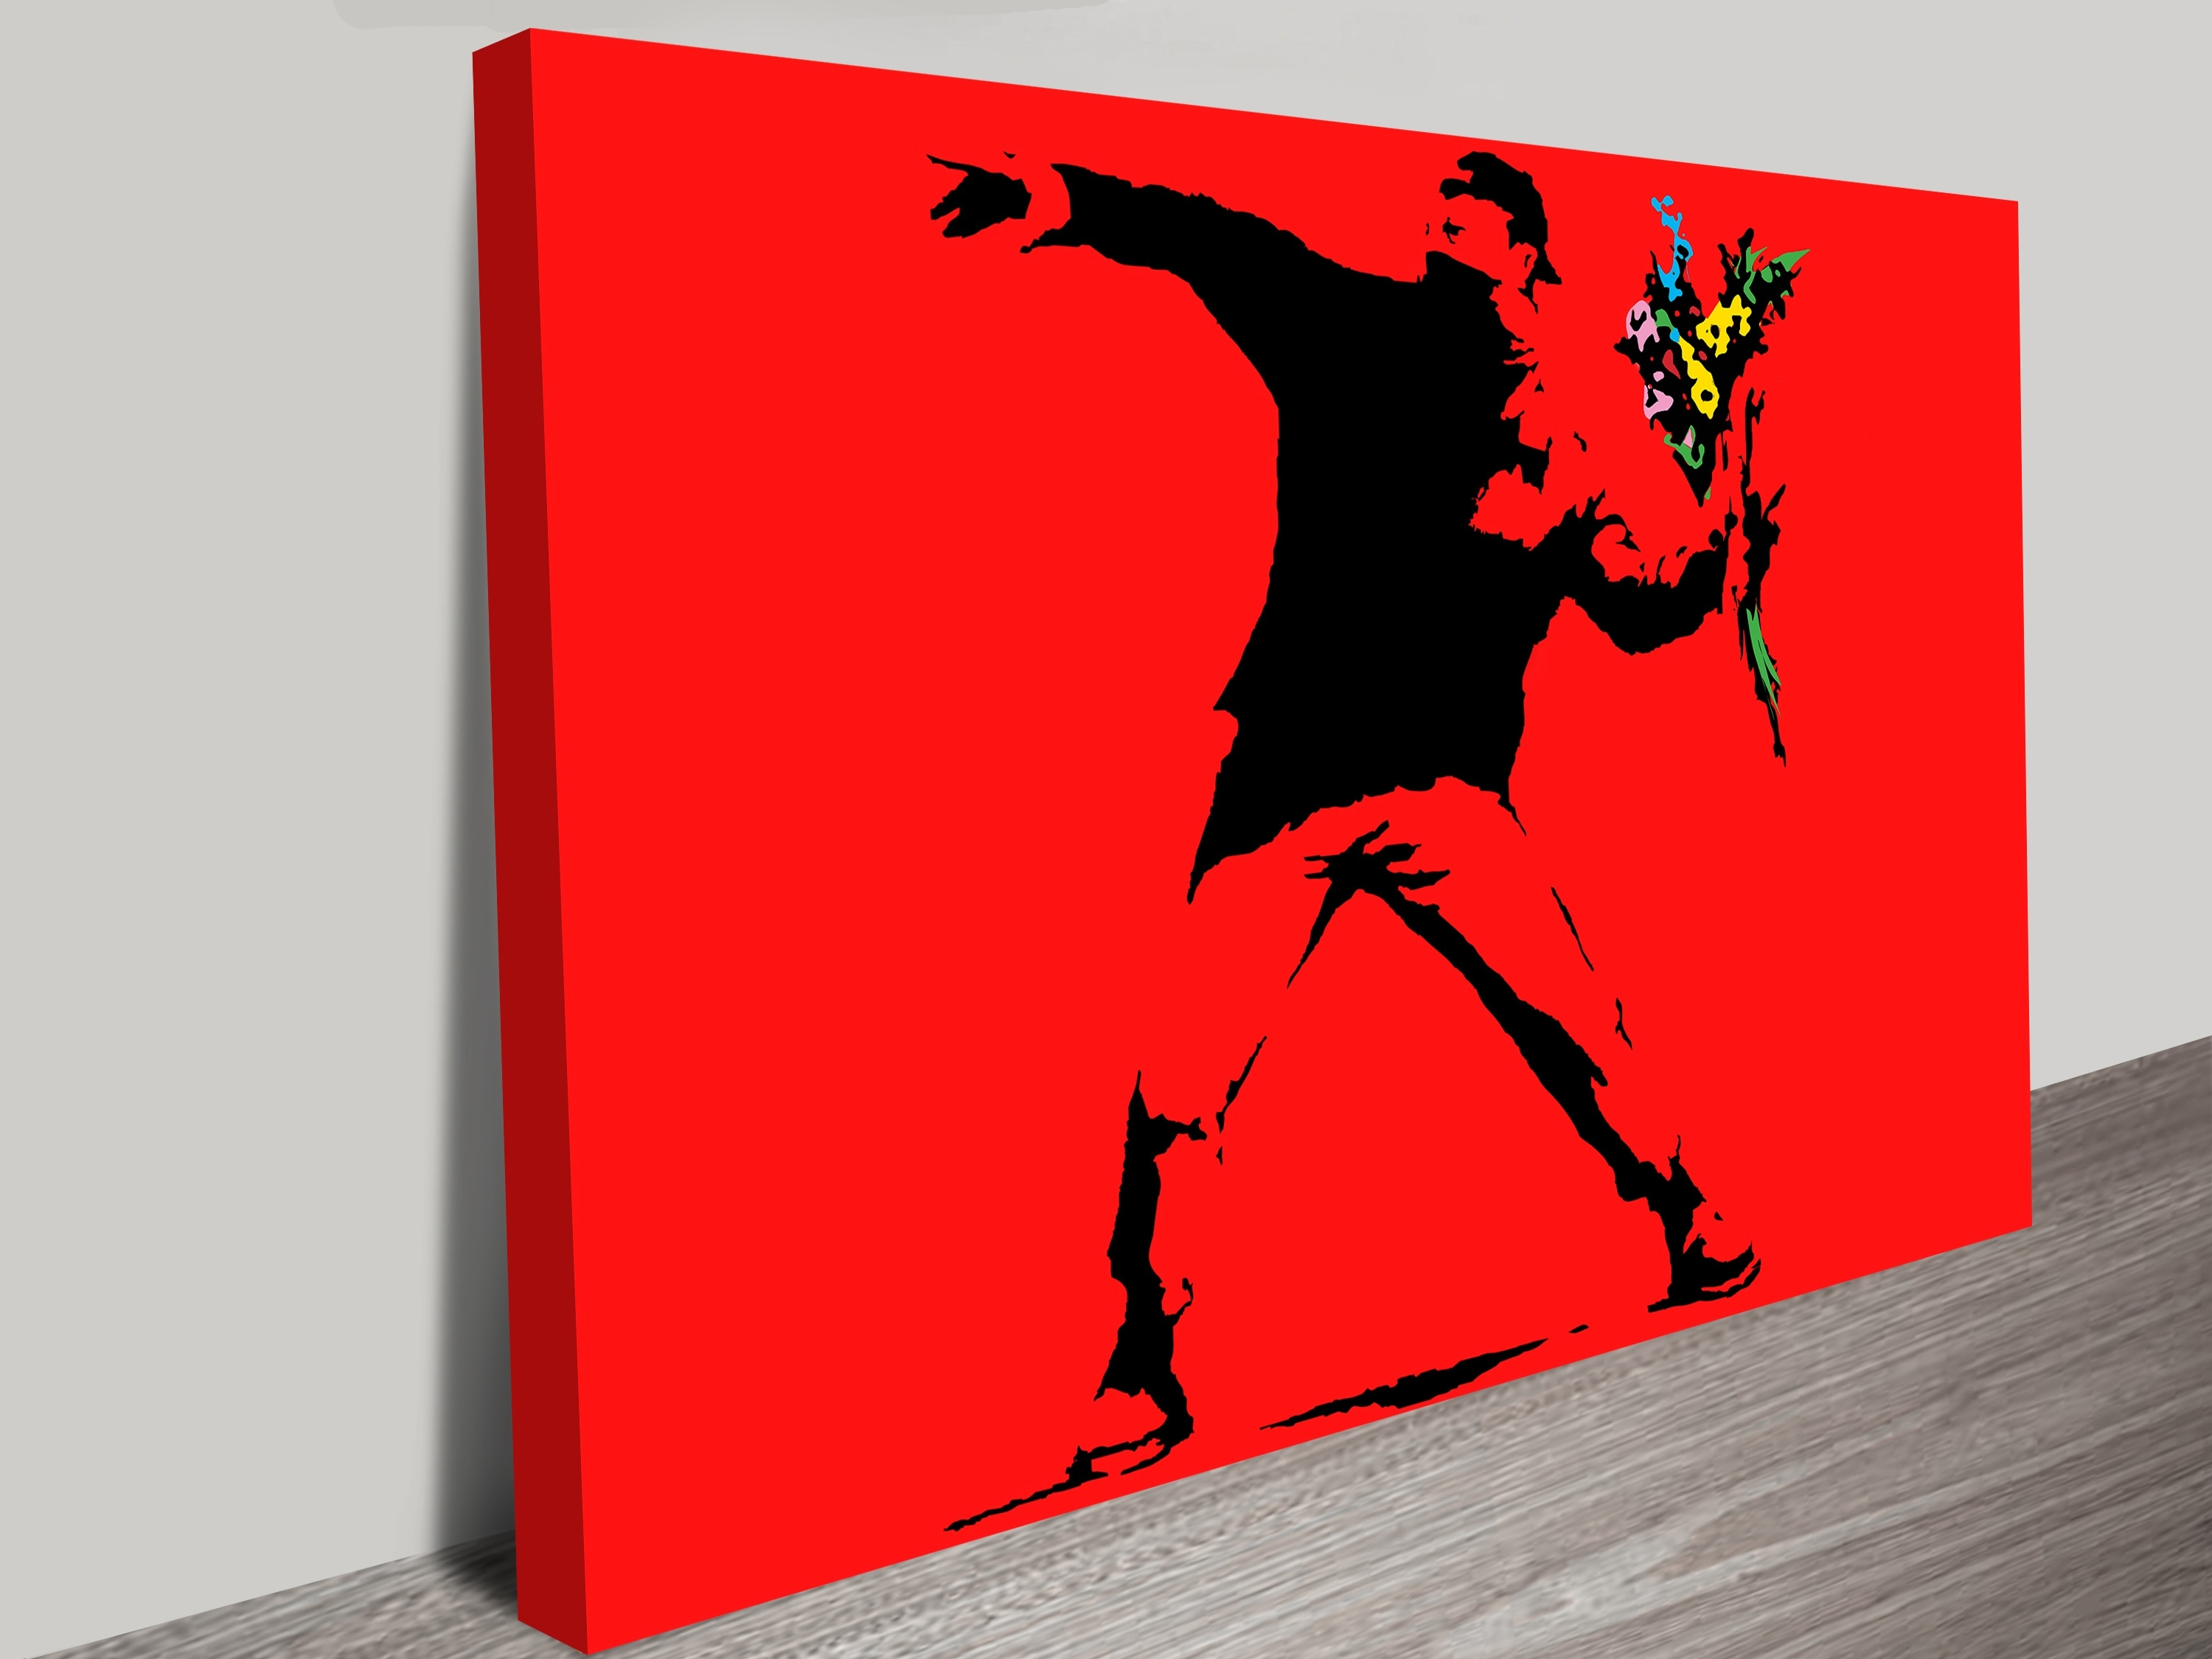 Most Recently Released Banksy Flower Thrower Red Wall Art Print Intended For Red Wall Art (View 3 of 15)